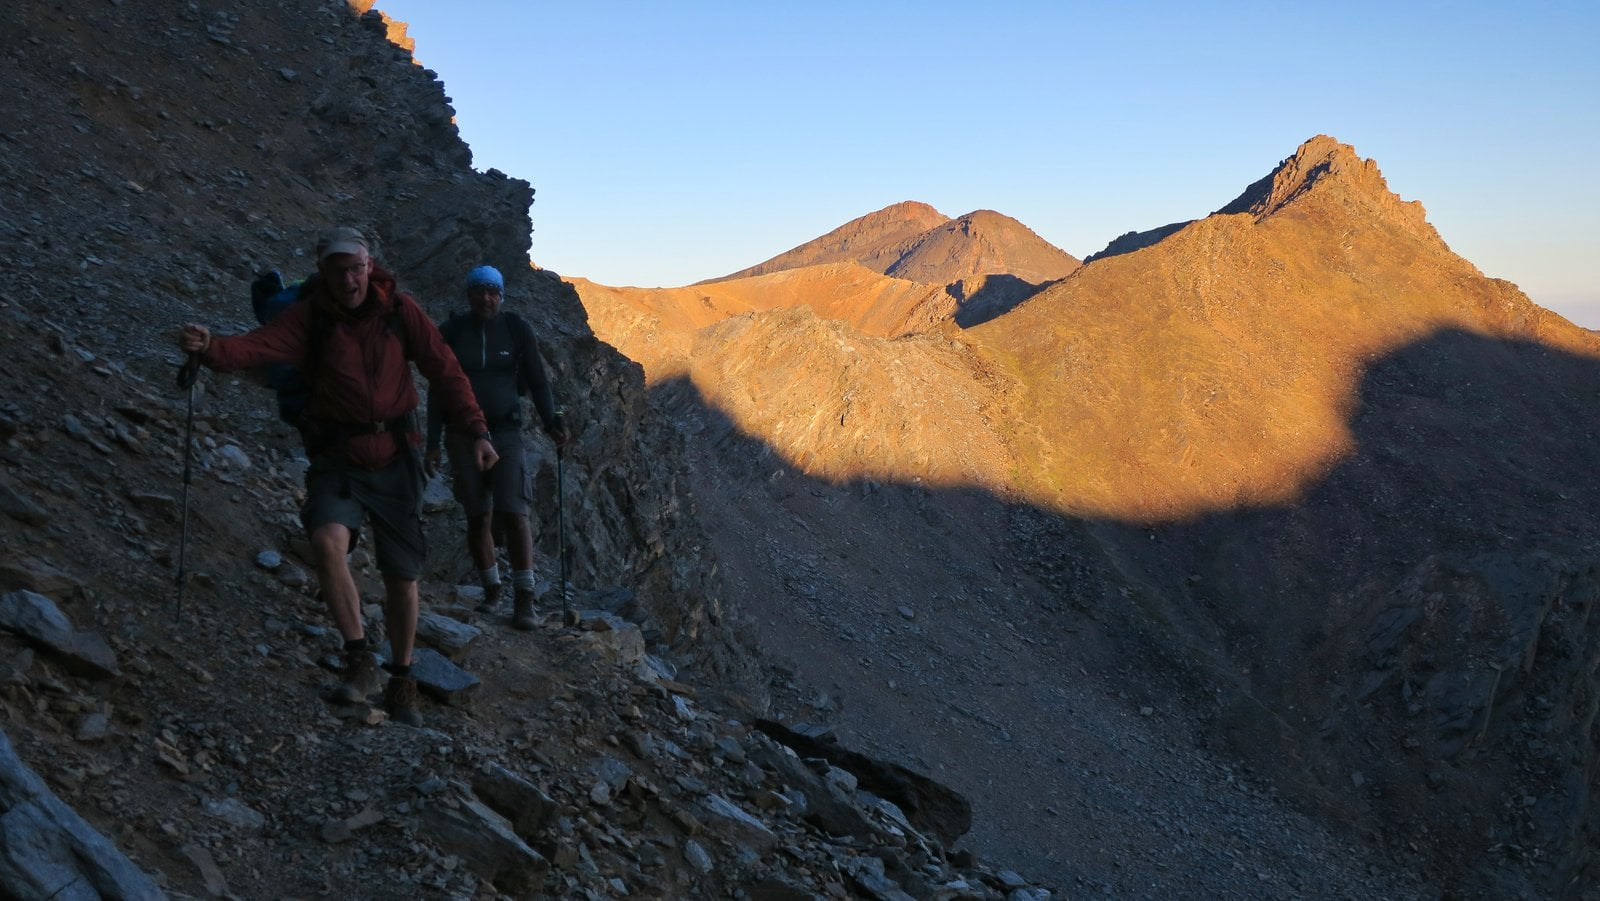 Edging our way carefully across Mulhacen's north face